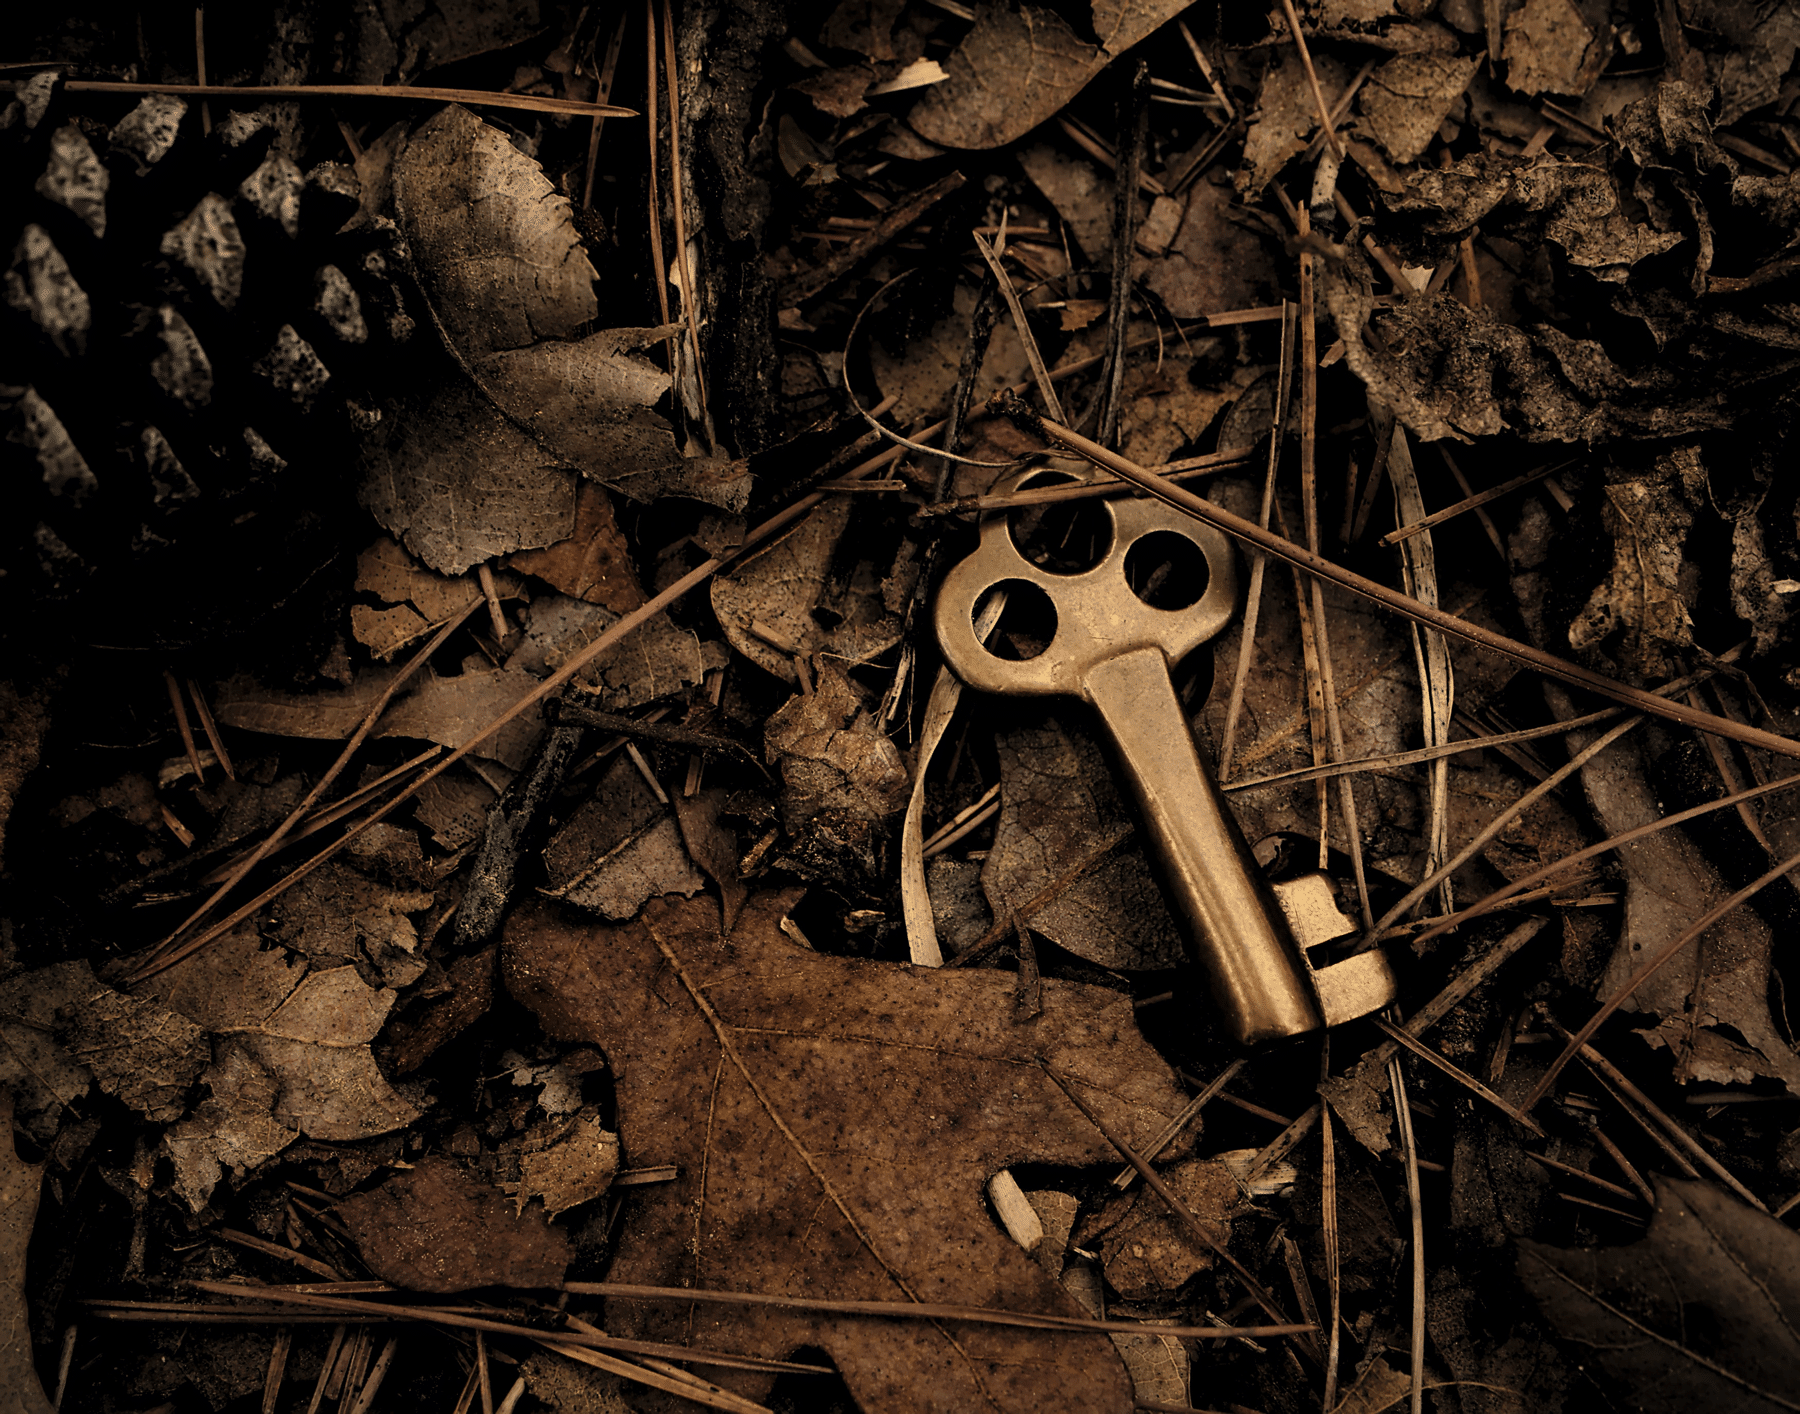 Skeleton key unearthed under leaves